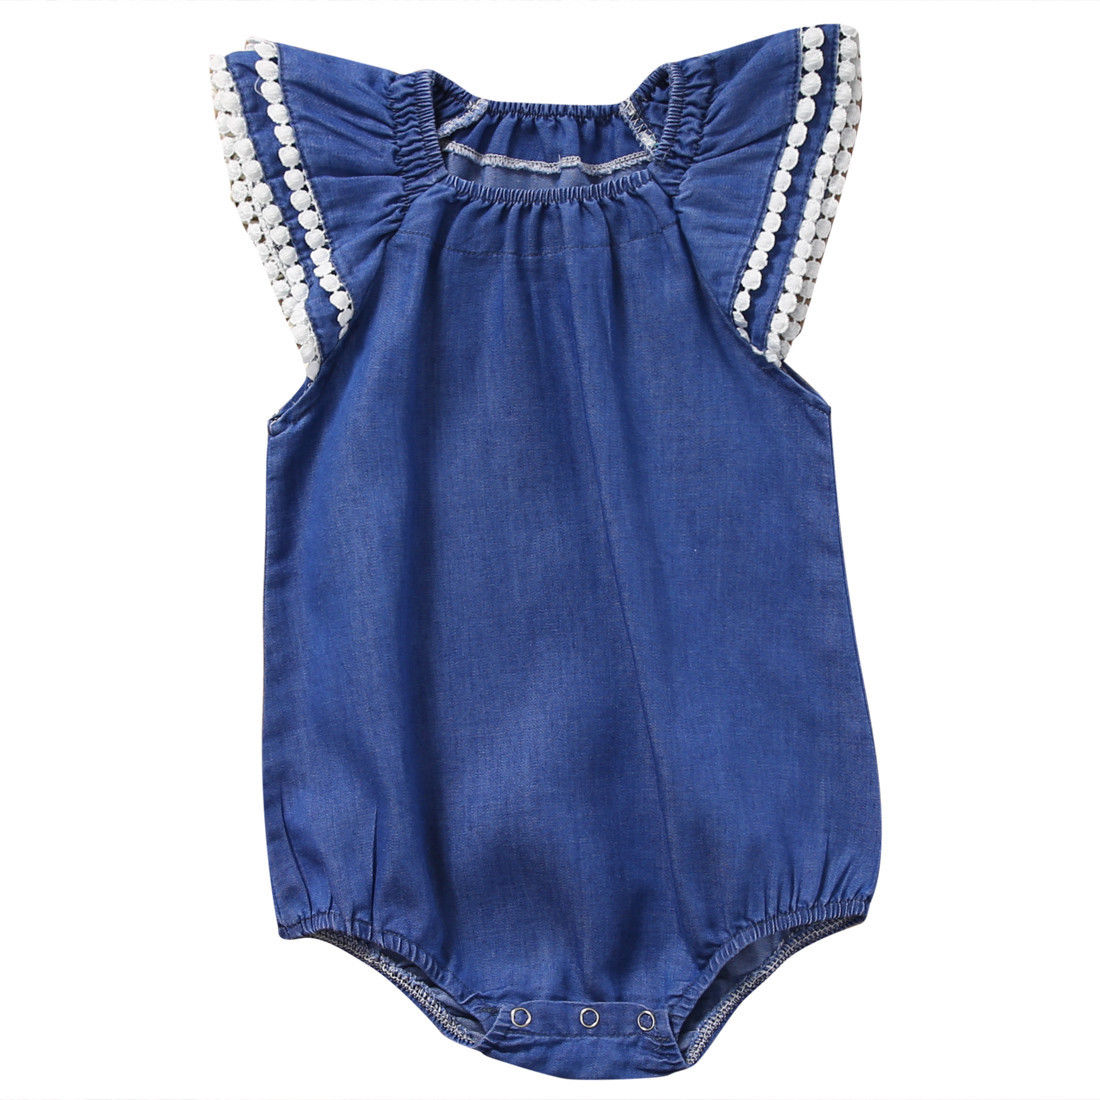 Baby Girl Romper Denim Romper Ruffles Sleeves Solid Blue Newborn Baby Rompers Toddler Kids Jumpsuit Outfits Sunsuit ...